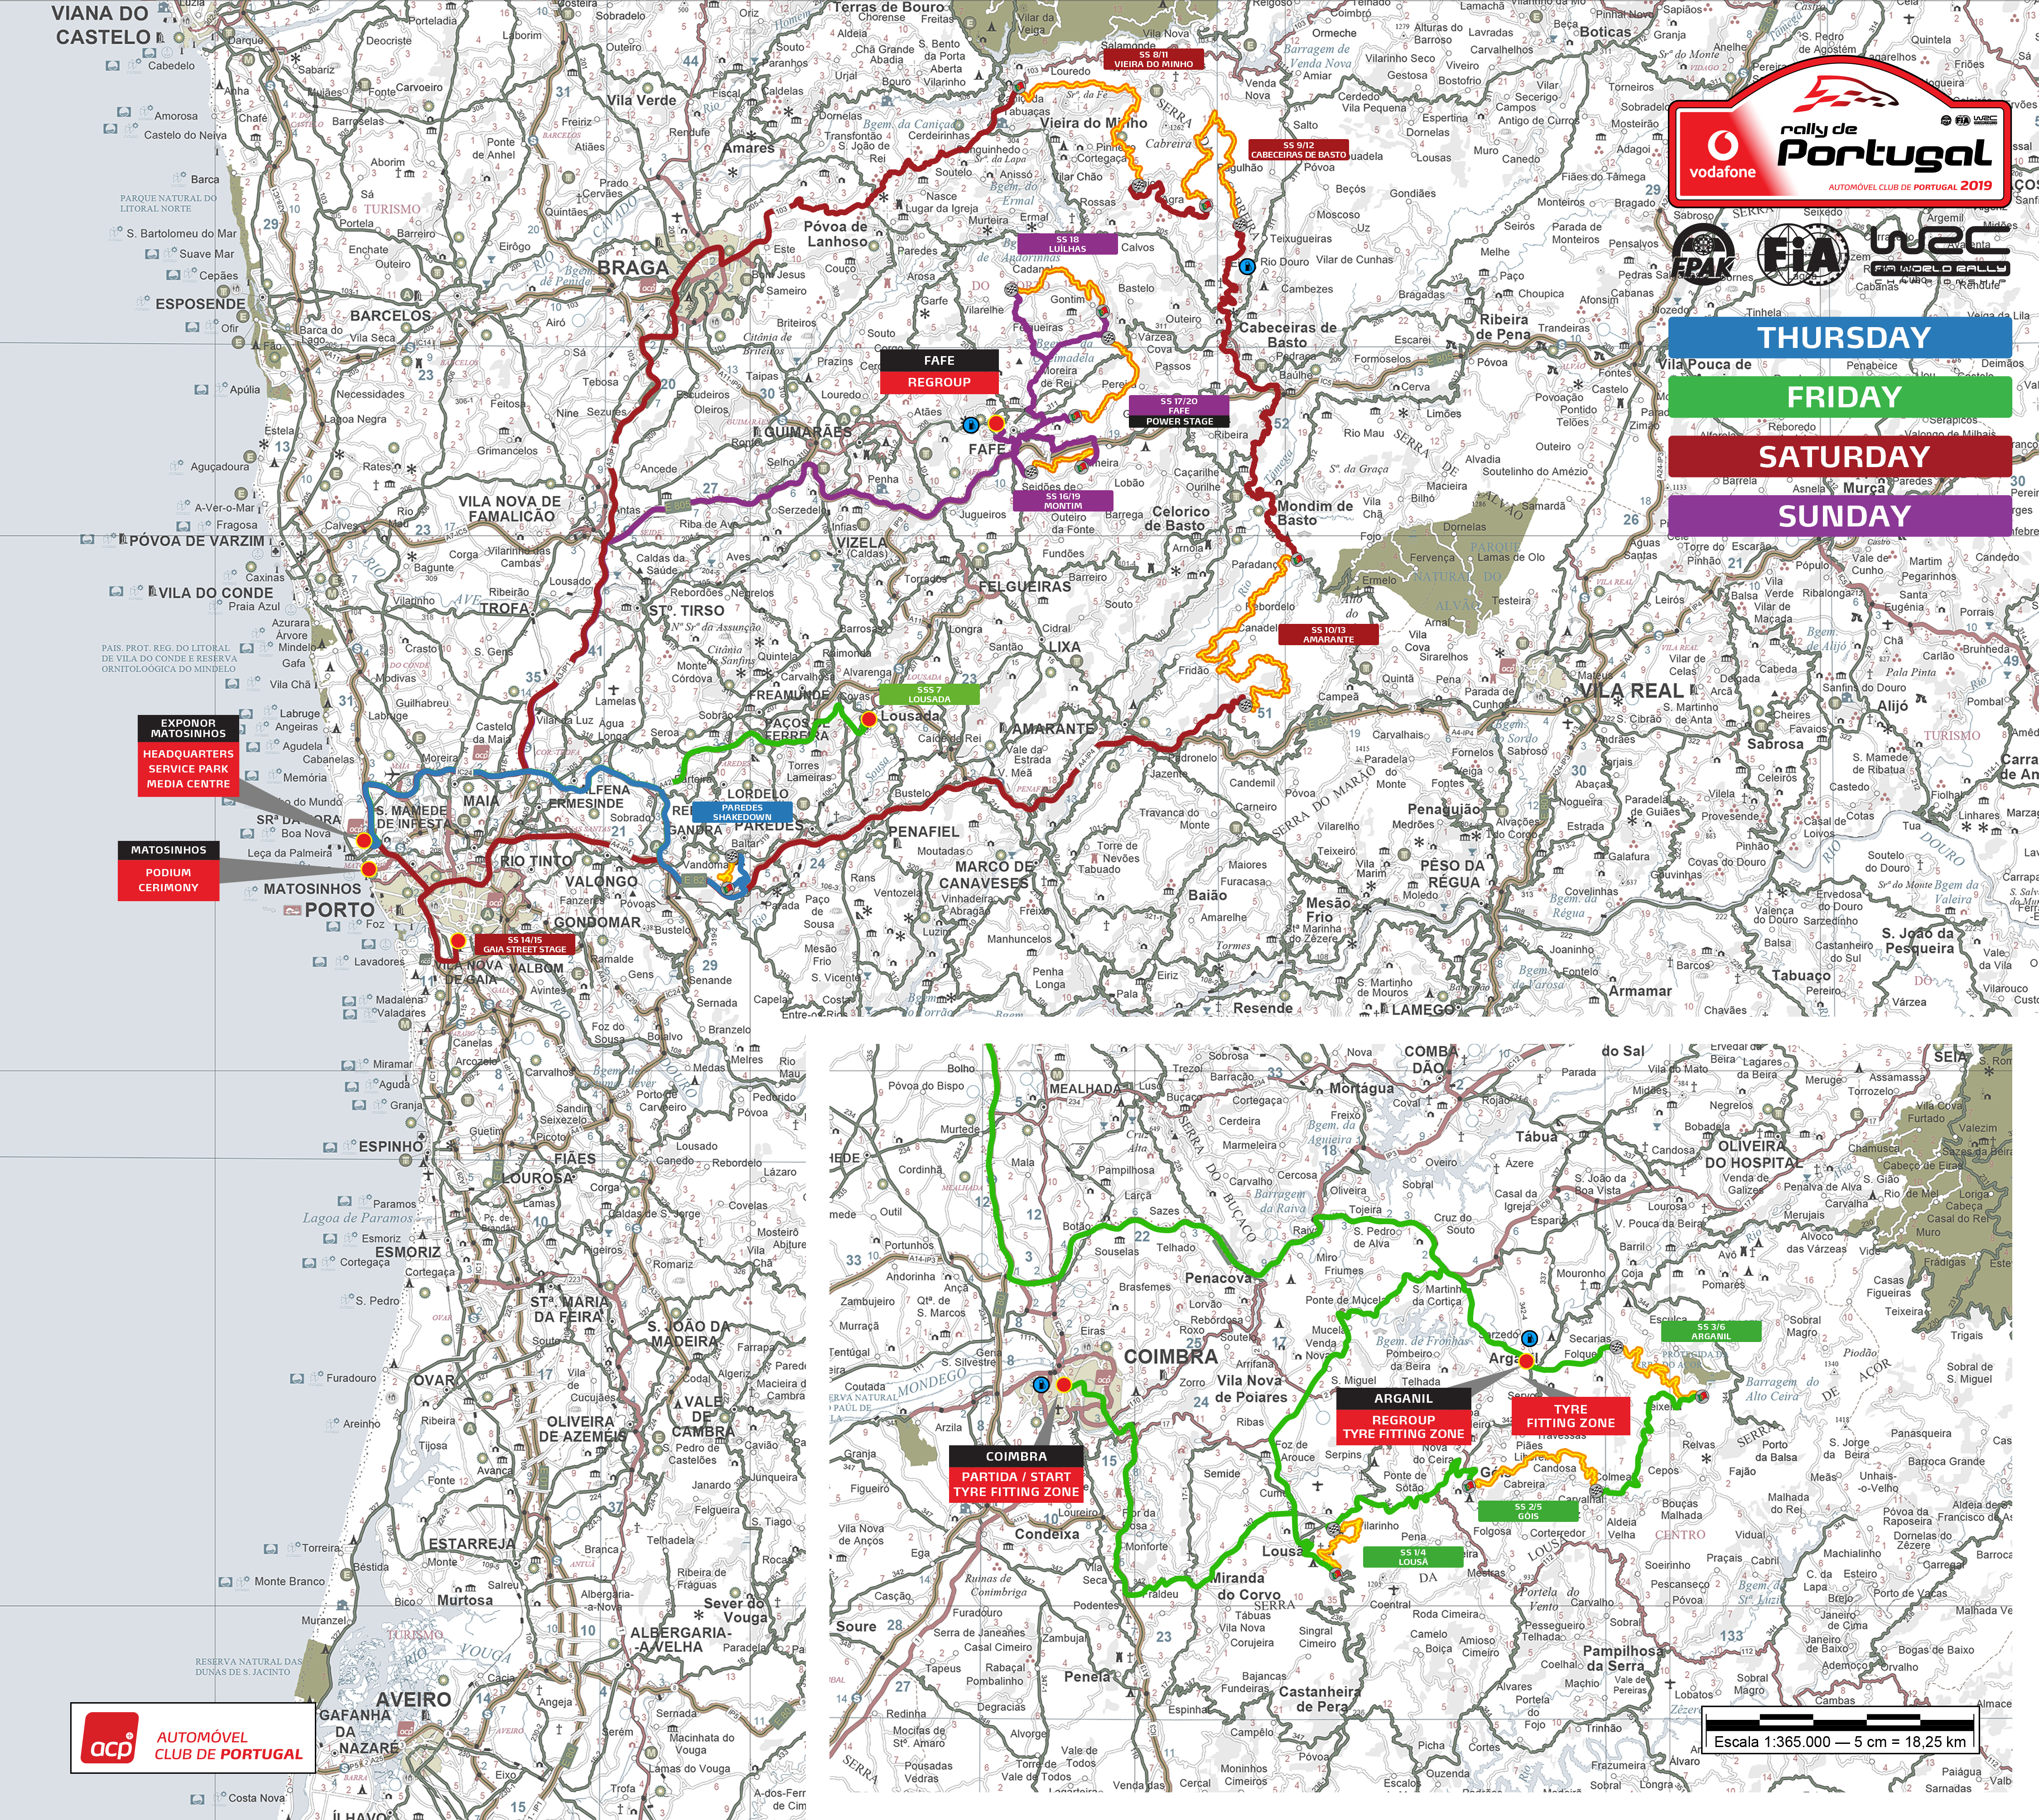 Rally De Portugal In The North And Centre Of The Country